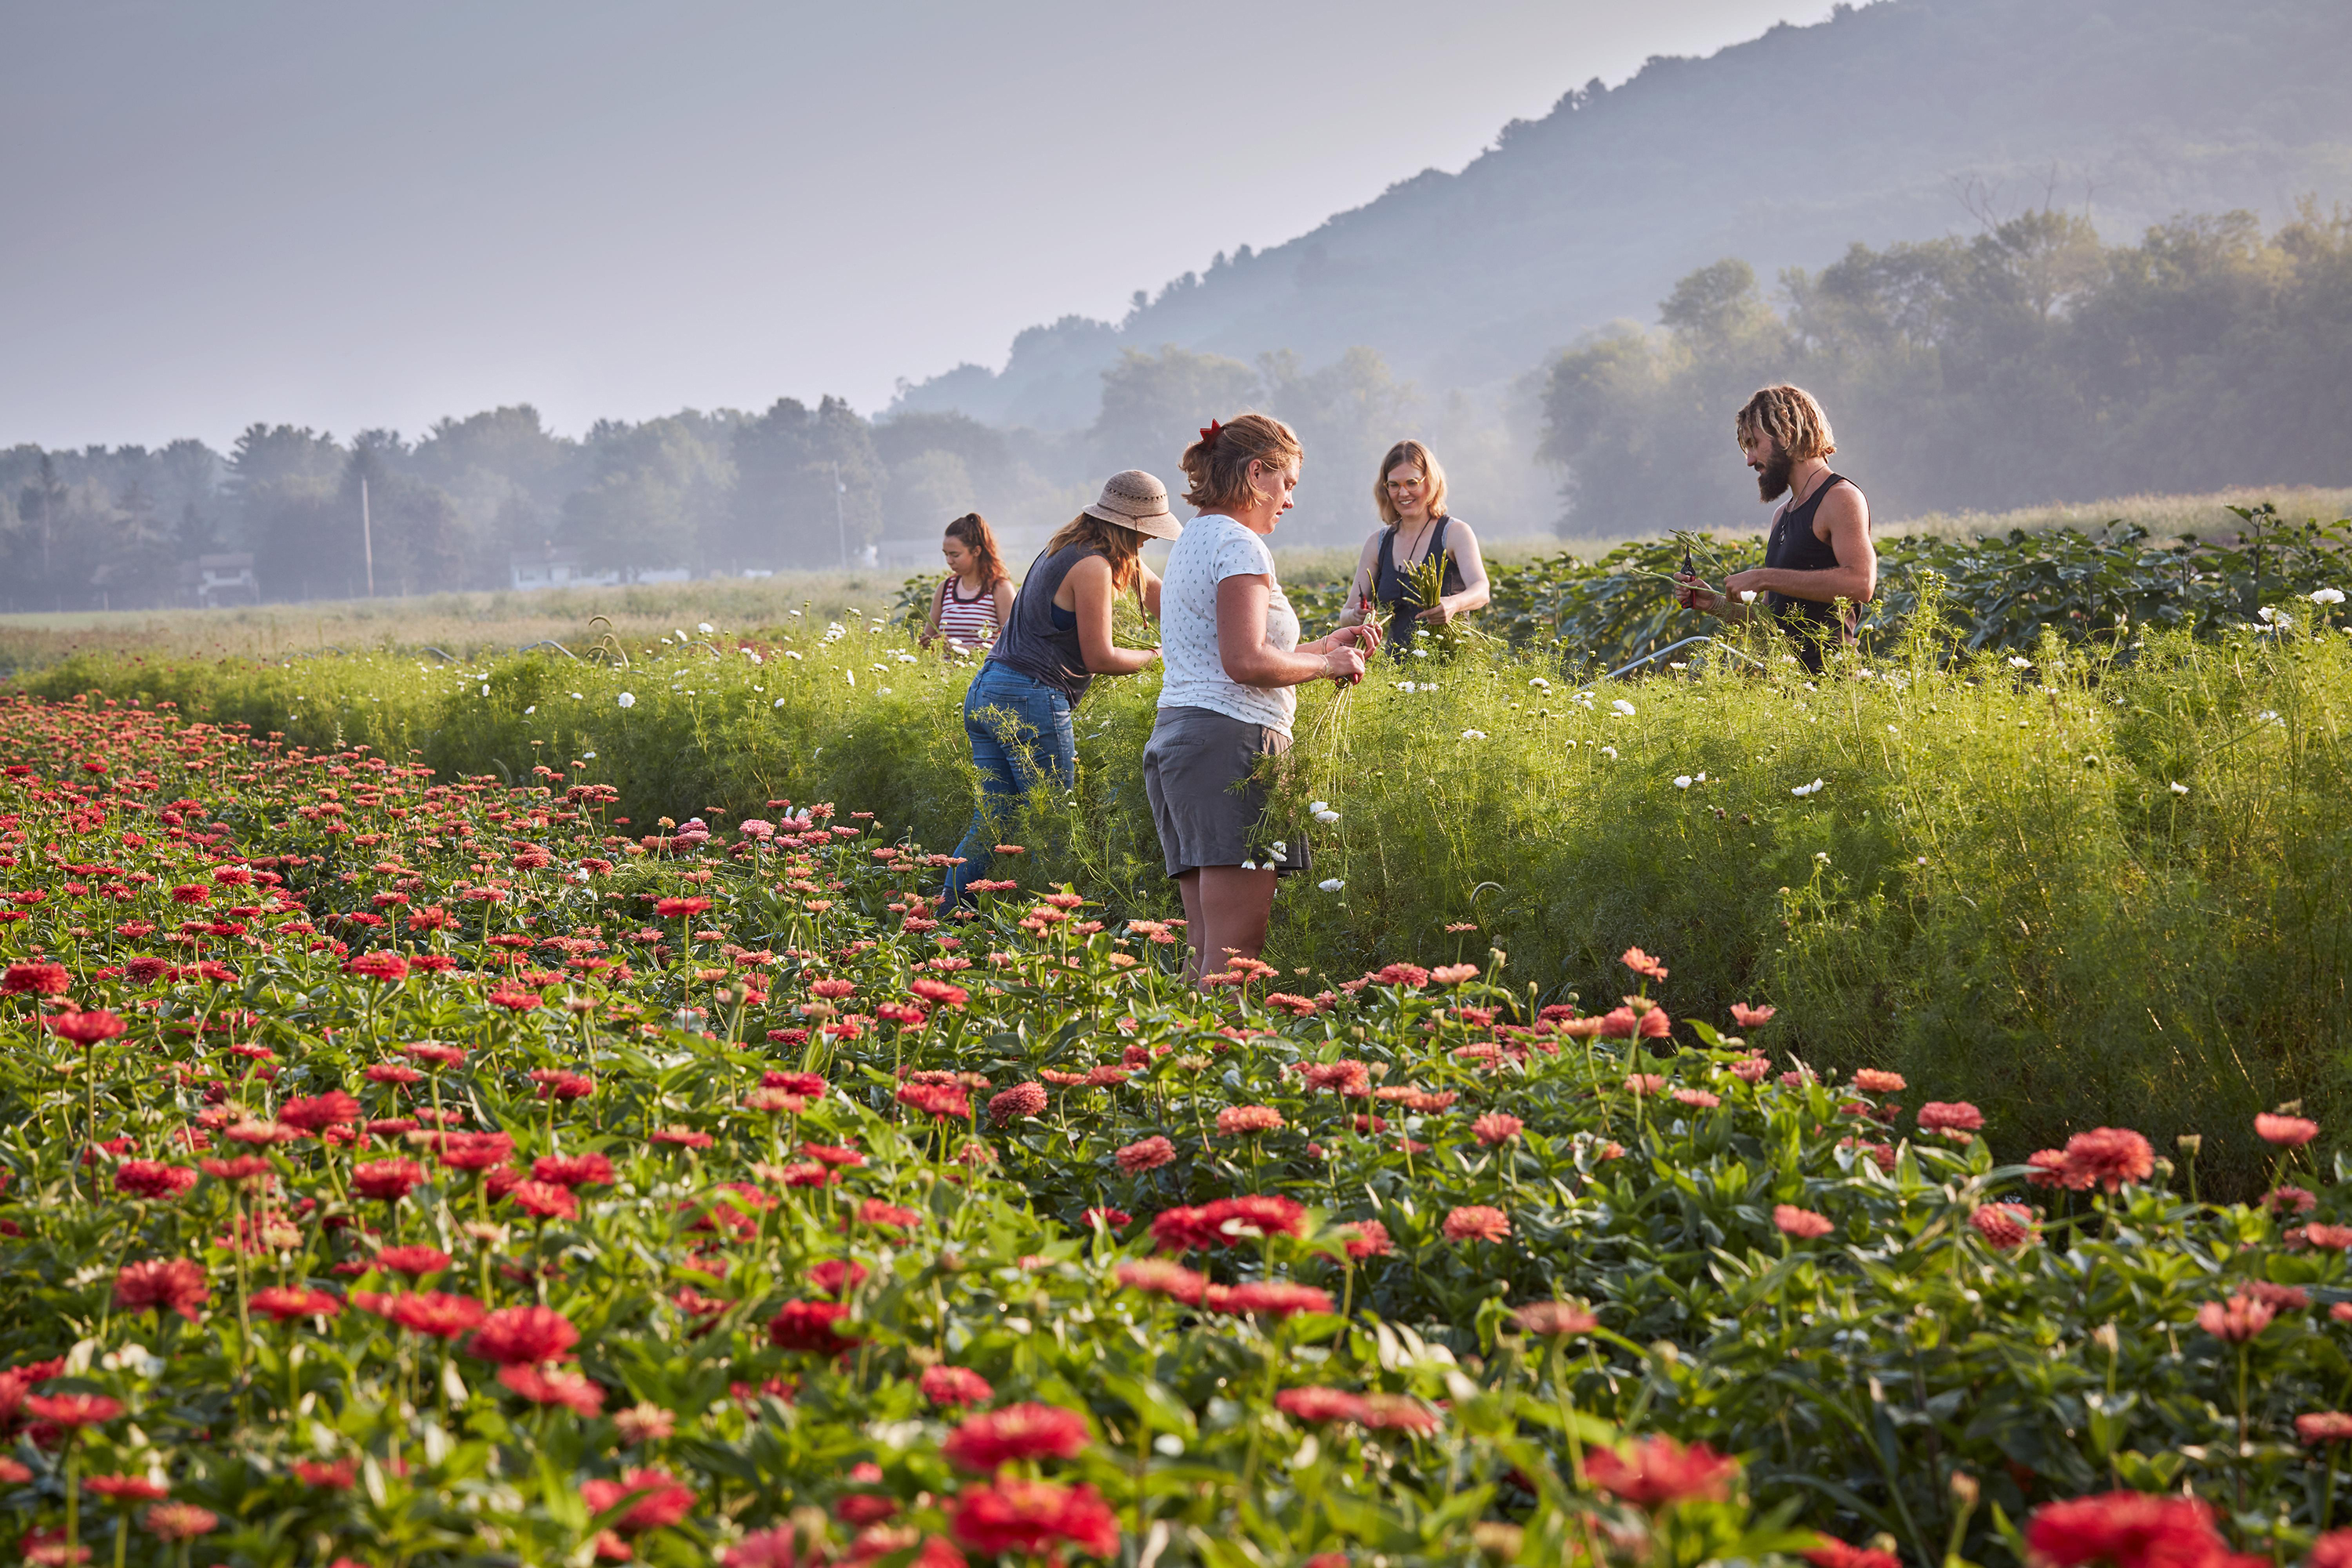 farmers working in a flower field